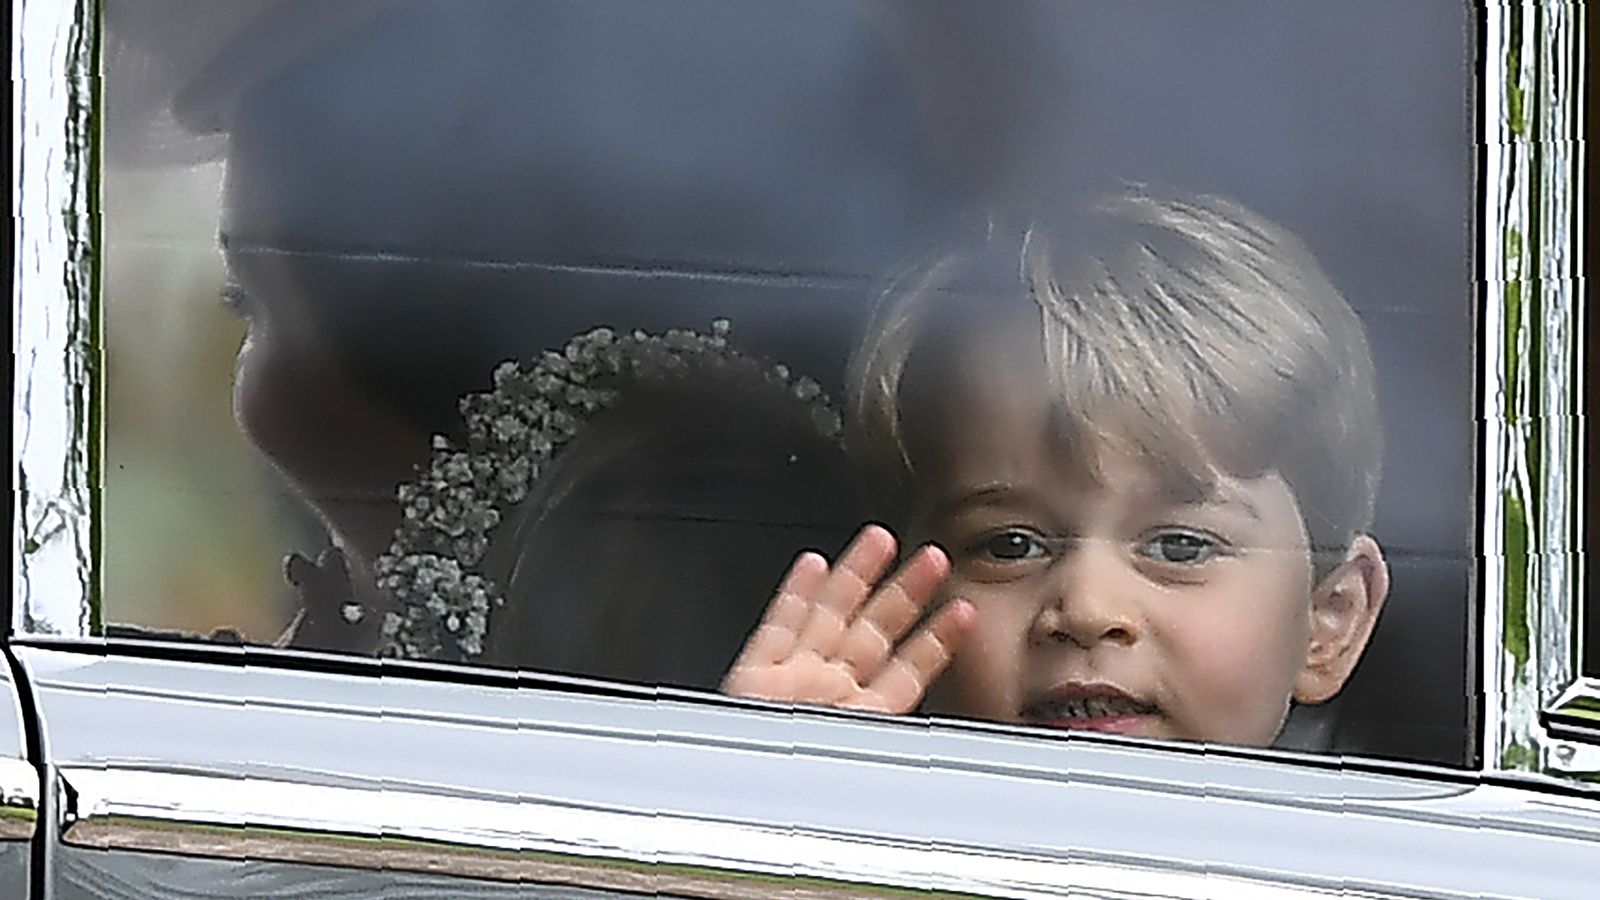 Prince George's school caught up in security scare